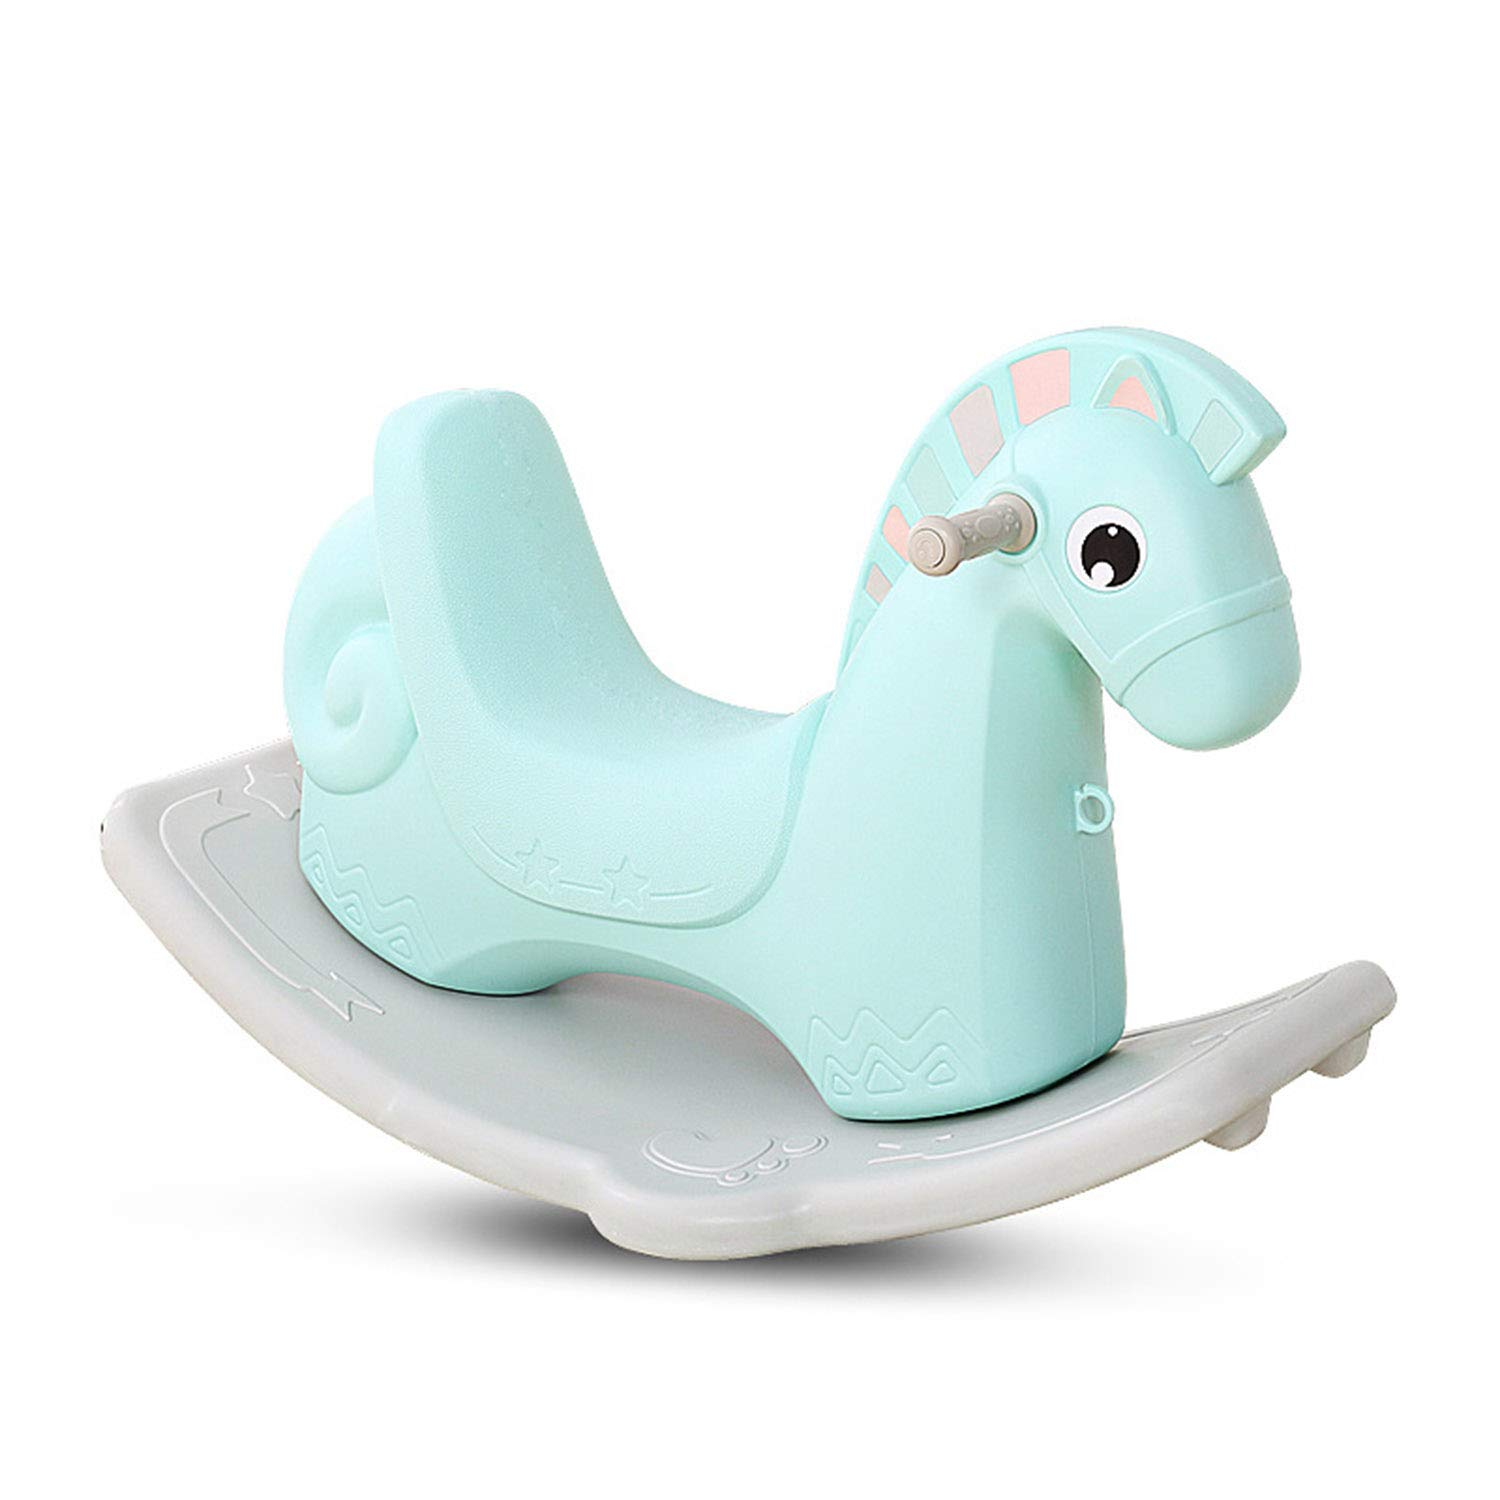 AIBAB Baby Rocking Horse Tumbler Baby Comfort Chair Thick Plastic Multifunction Nursery Boy Girl Toy Gift by AIBAB (Image #1)